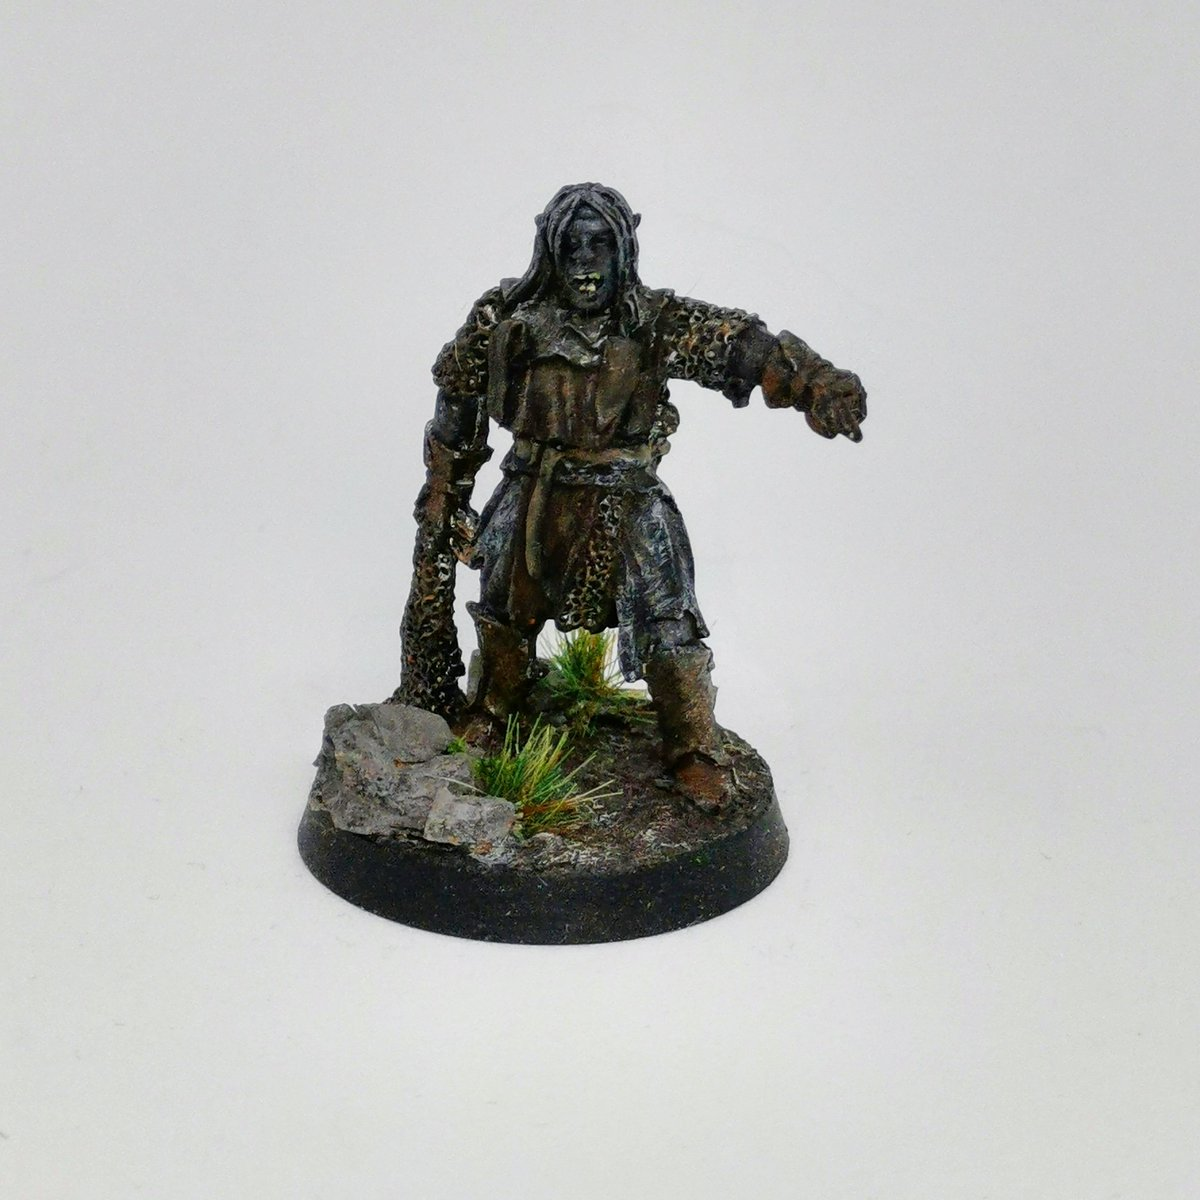 Forgot how much fun the old Lord of the rings miniatures are to paint now on to the rest. #painting #miniatures #lordoftherings #paintingminiatures #wargames #wargaming #gamesworkshop #warmongers https://t.co/3azuBD6bCm